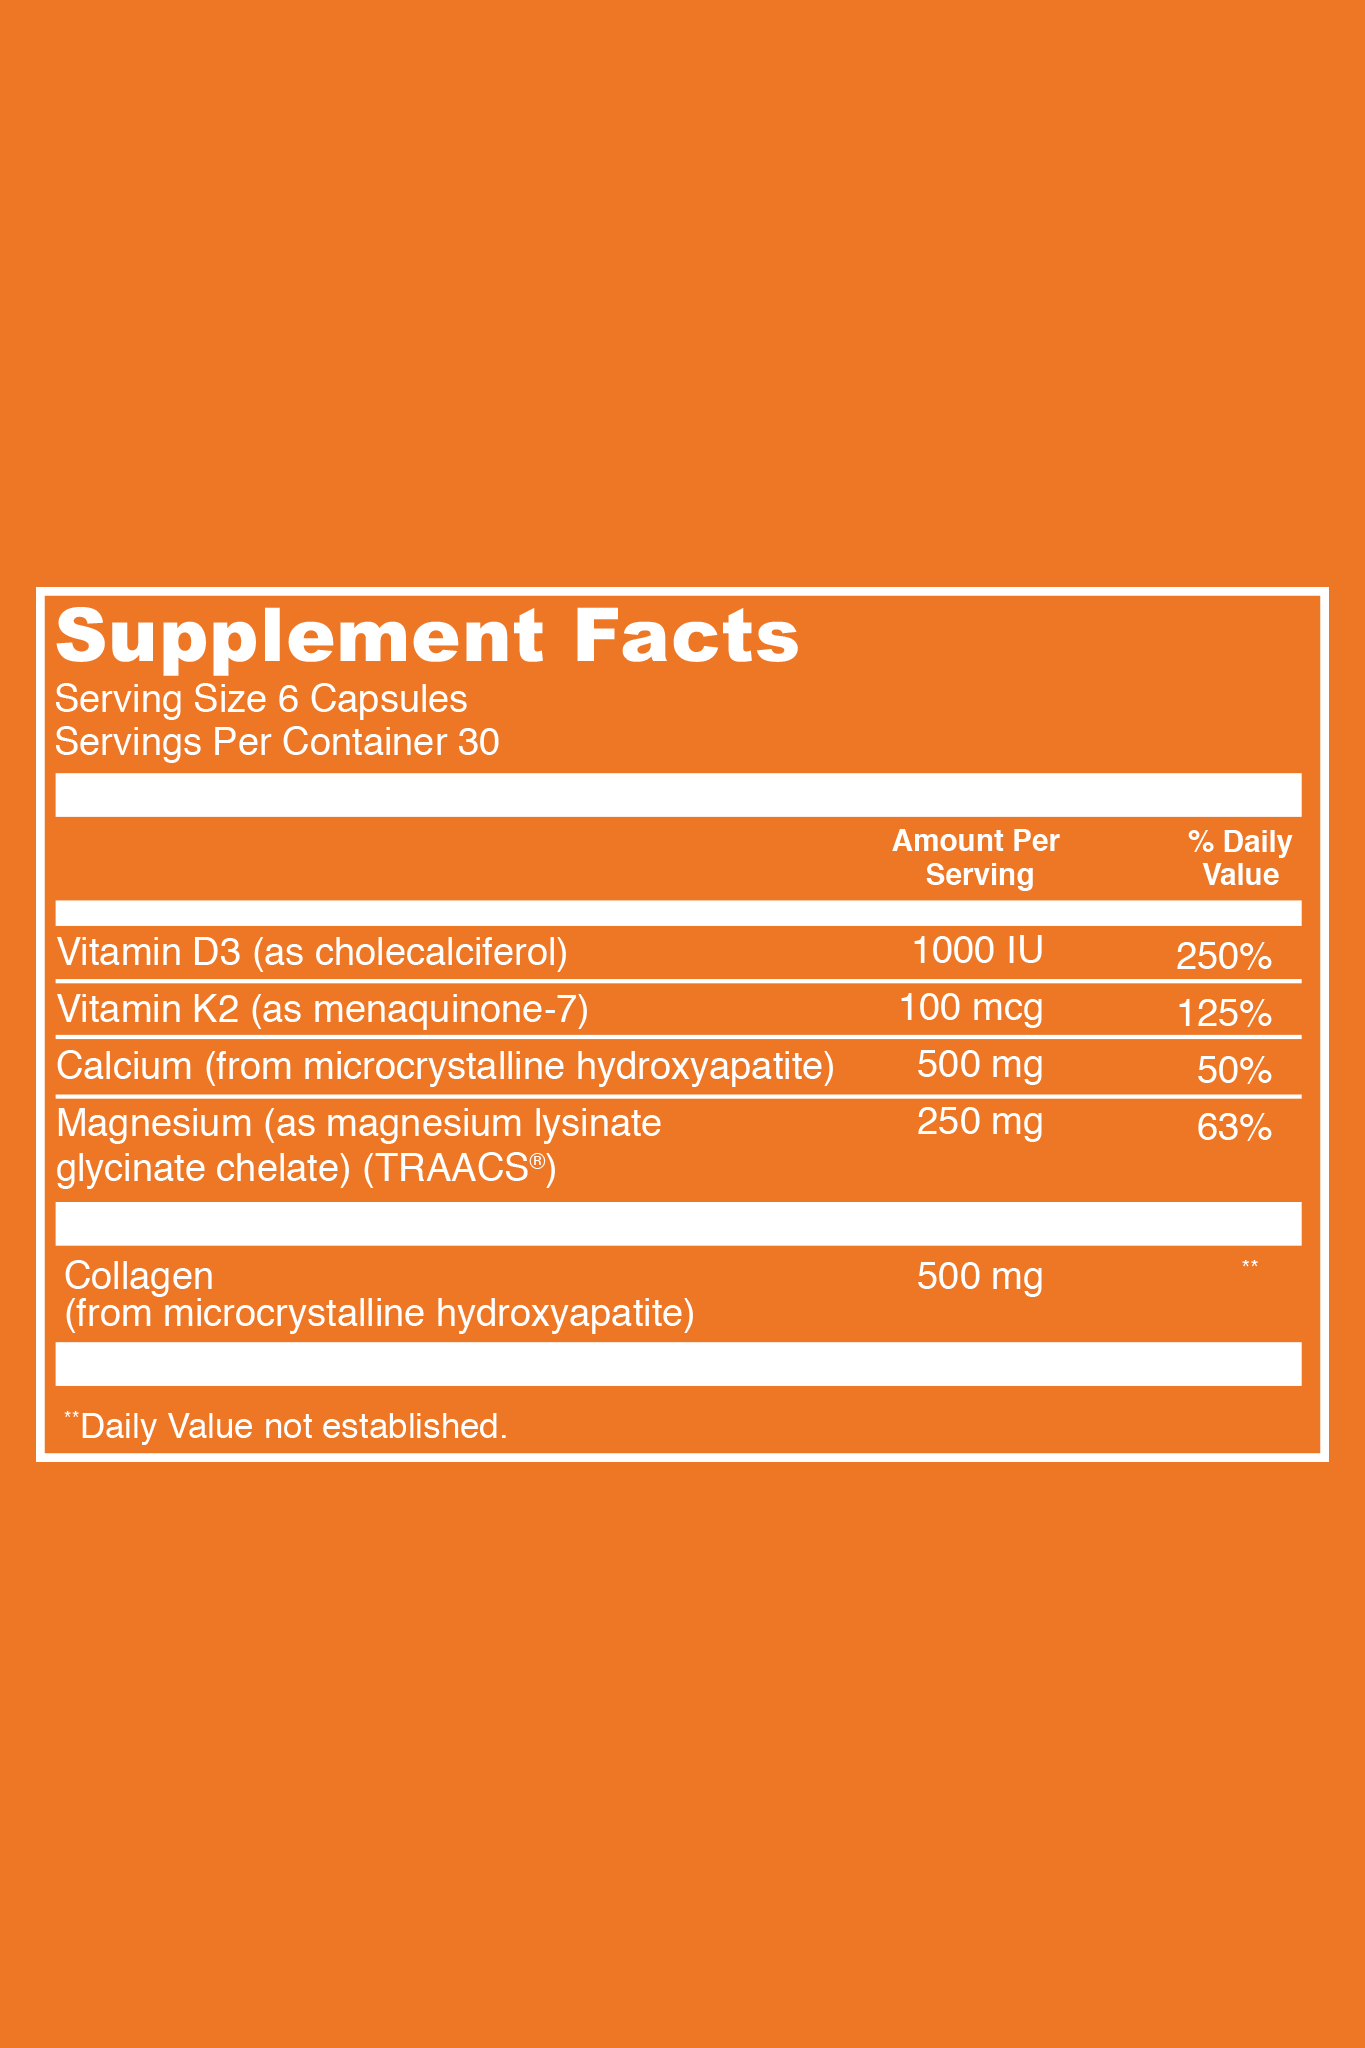 Bone Collagen Supplement Facts. Serving Size: 6 Capsules. Servings Per Container: 30. Vitamin D3 (as cholecalciferol) - 1000 IU per serving (250% DV). Vitamin K2 (as menaquinone-7) - 100 mcg (125% DV). Calcium (from microcrystalline hydroxyapatite) - 500 mg per serving (50% DV). Magnesium (as magnesium lysinate glycinate chelate (TRAACS) - 250 mg per serving (63%). Collagen - 500 mg per serving.